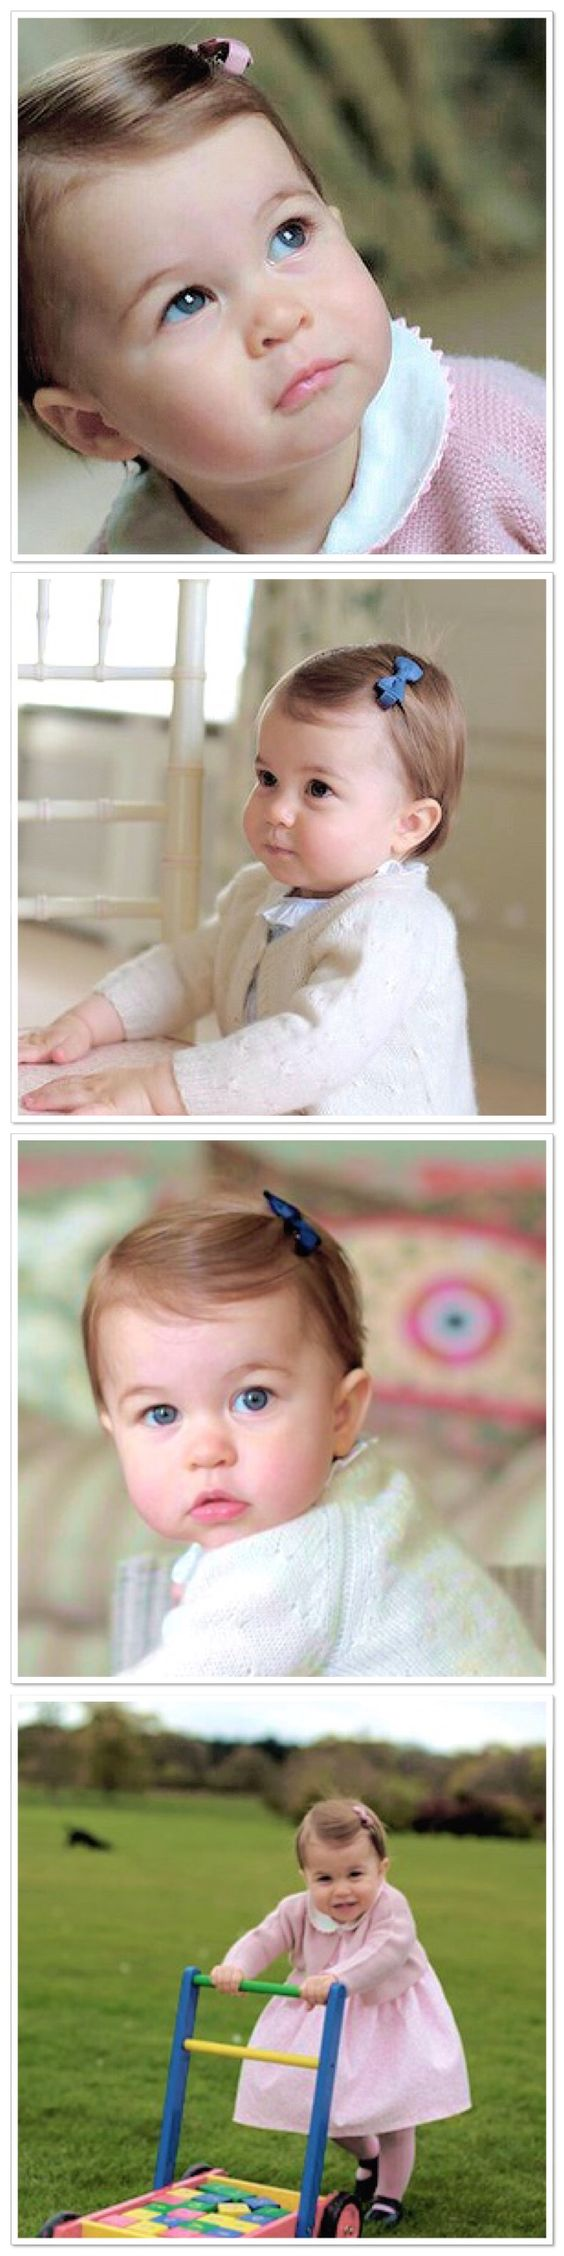 Happy 1st Birthday Princess Charlotte!! It seems like yesterday when Kate stepped out of St.Marys hospital carrying a bundled up tiny baby Charlotte- With Love, Rachel Ohebshalom